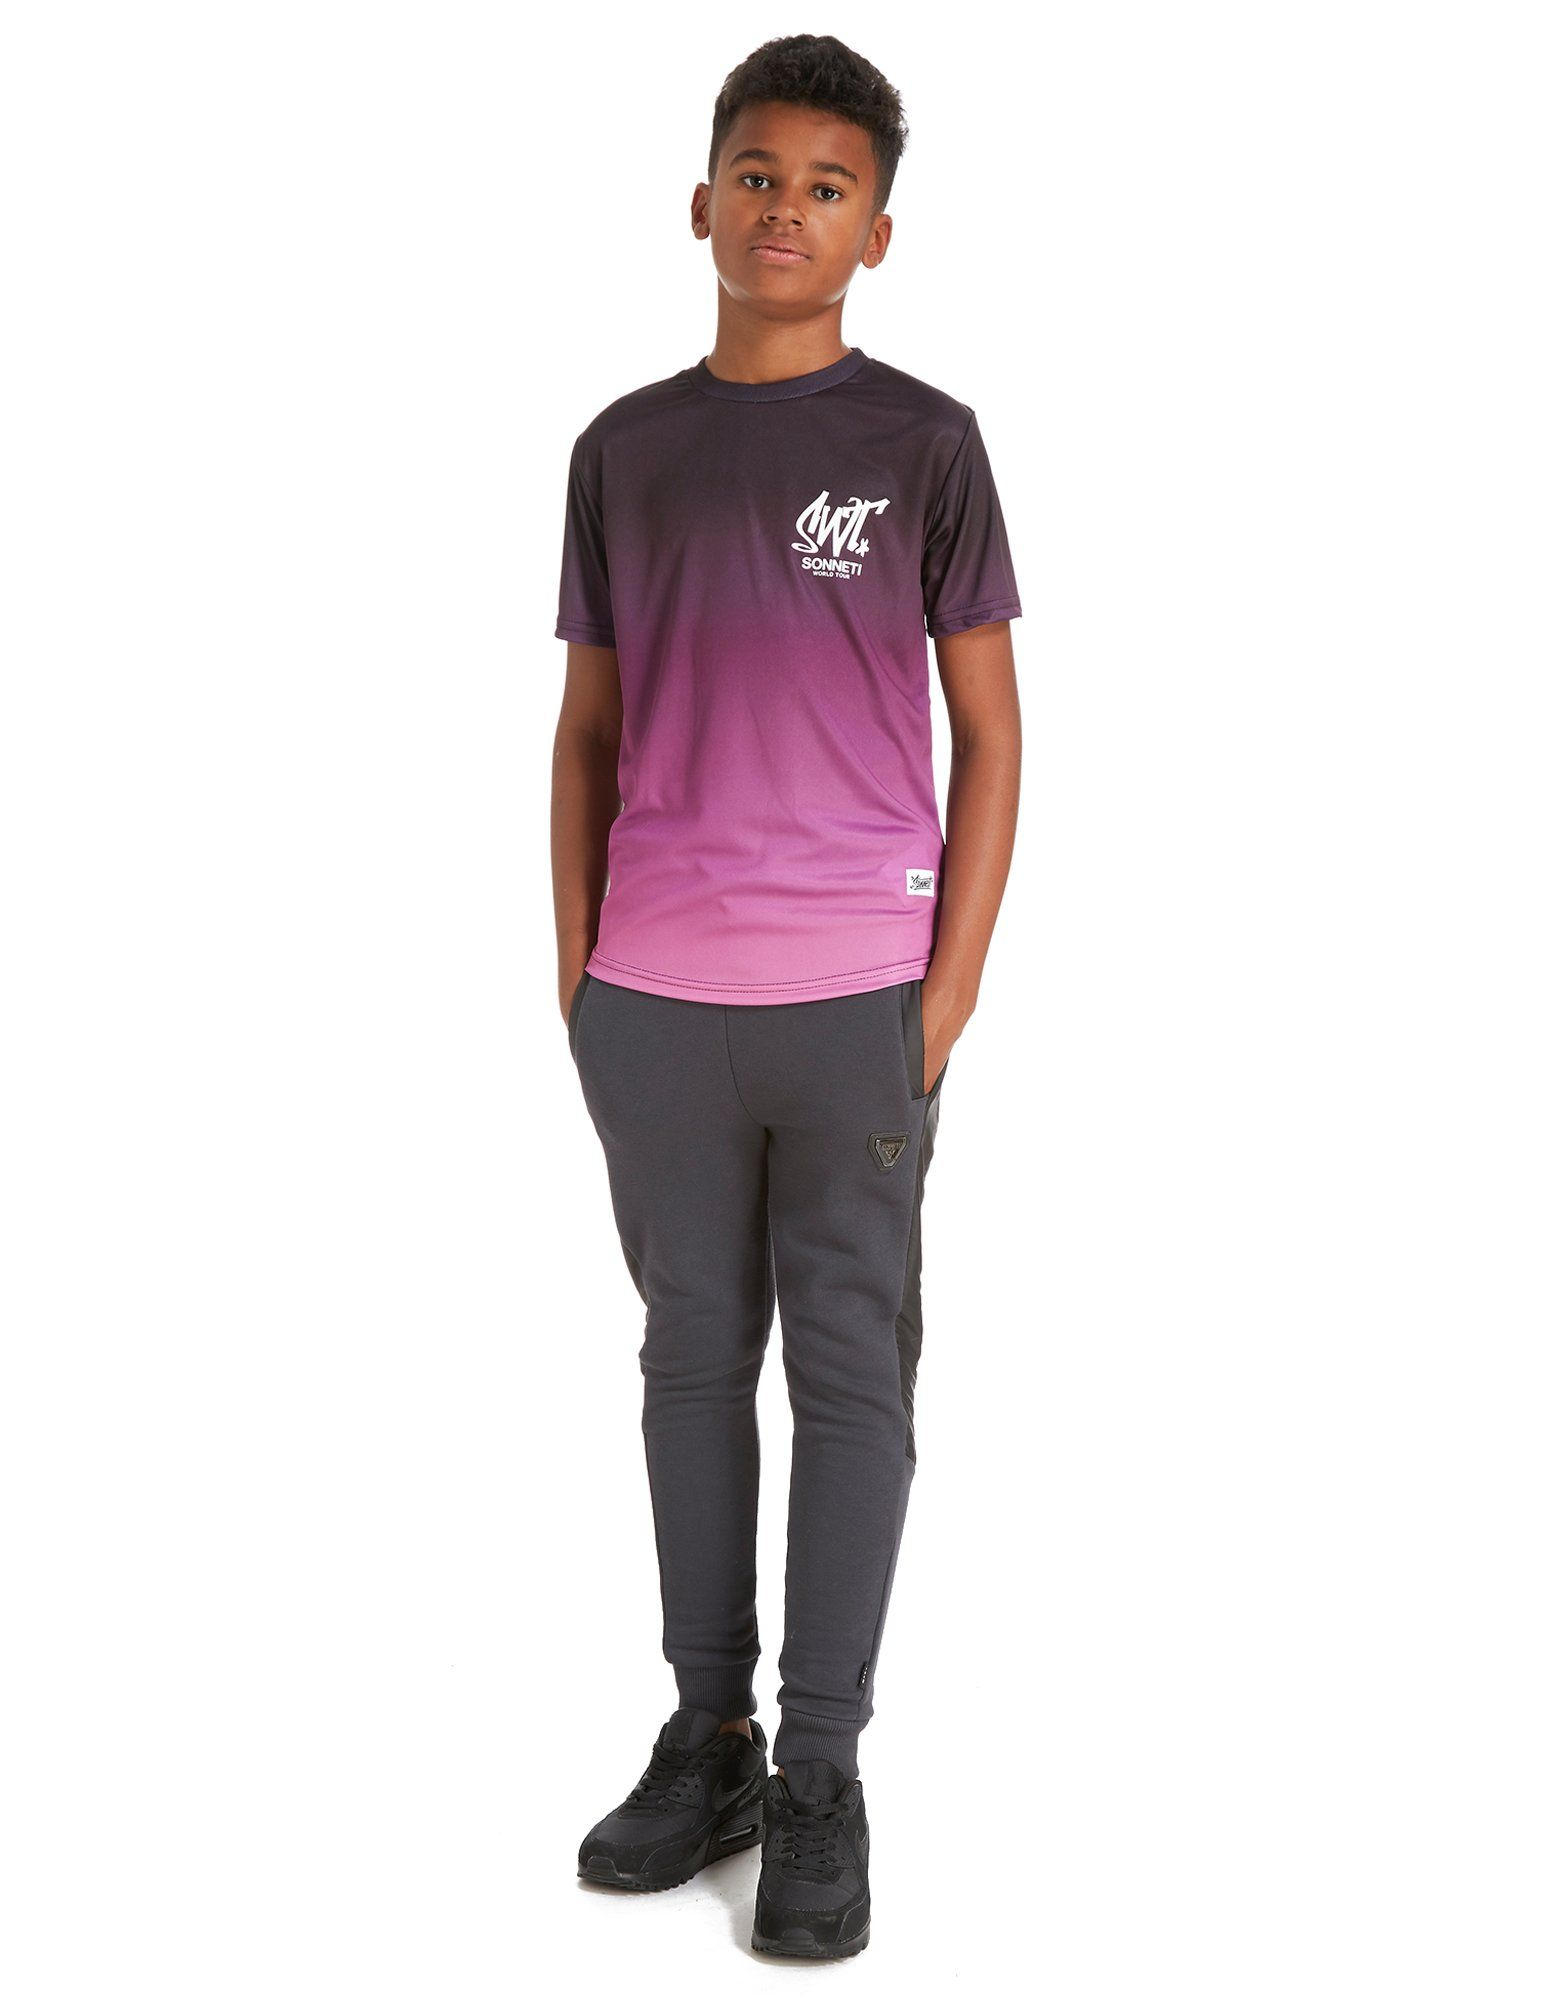 Sonneti Mash T-Shirt Junior